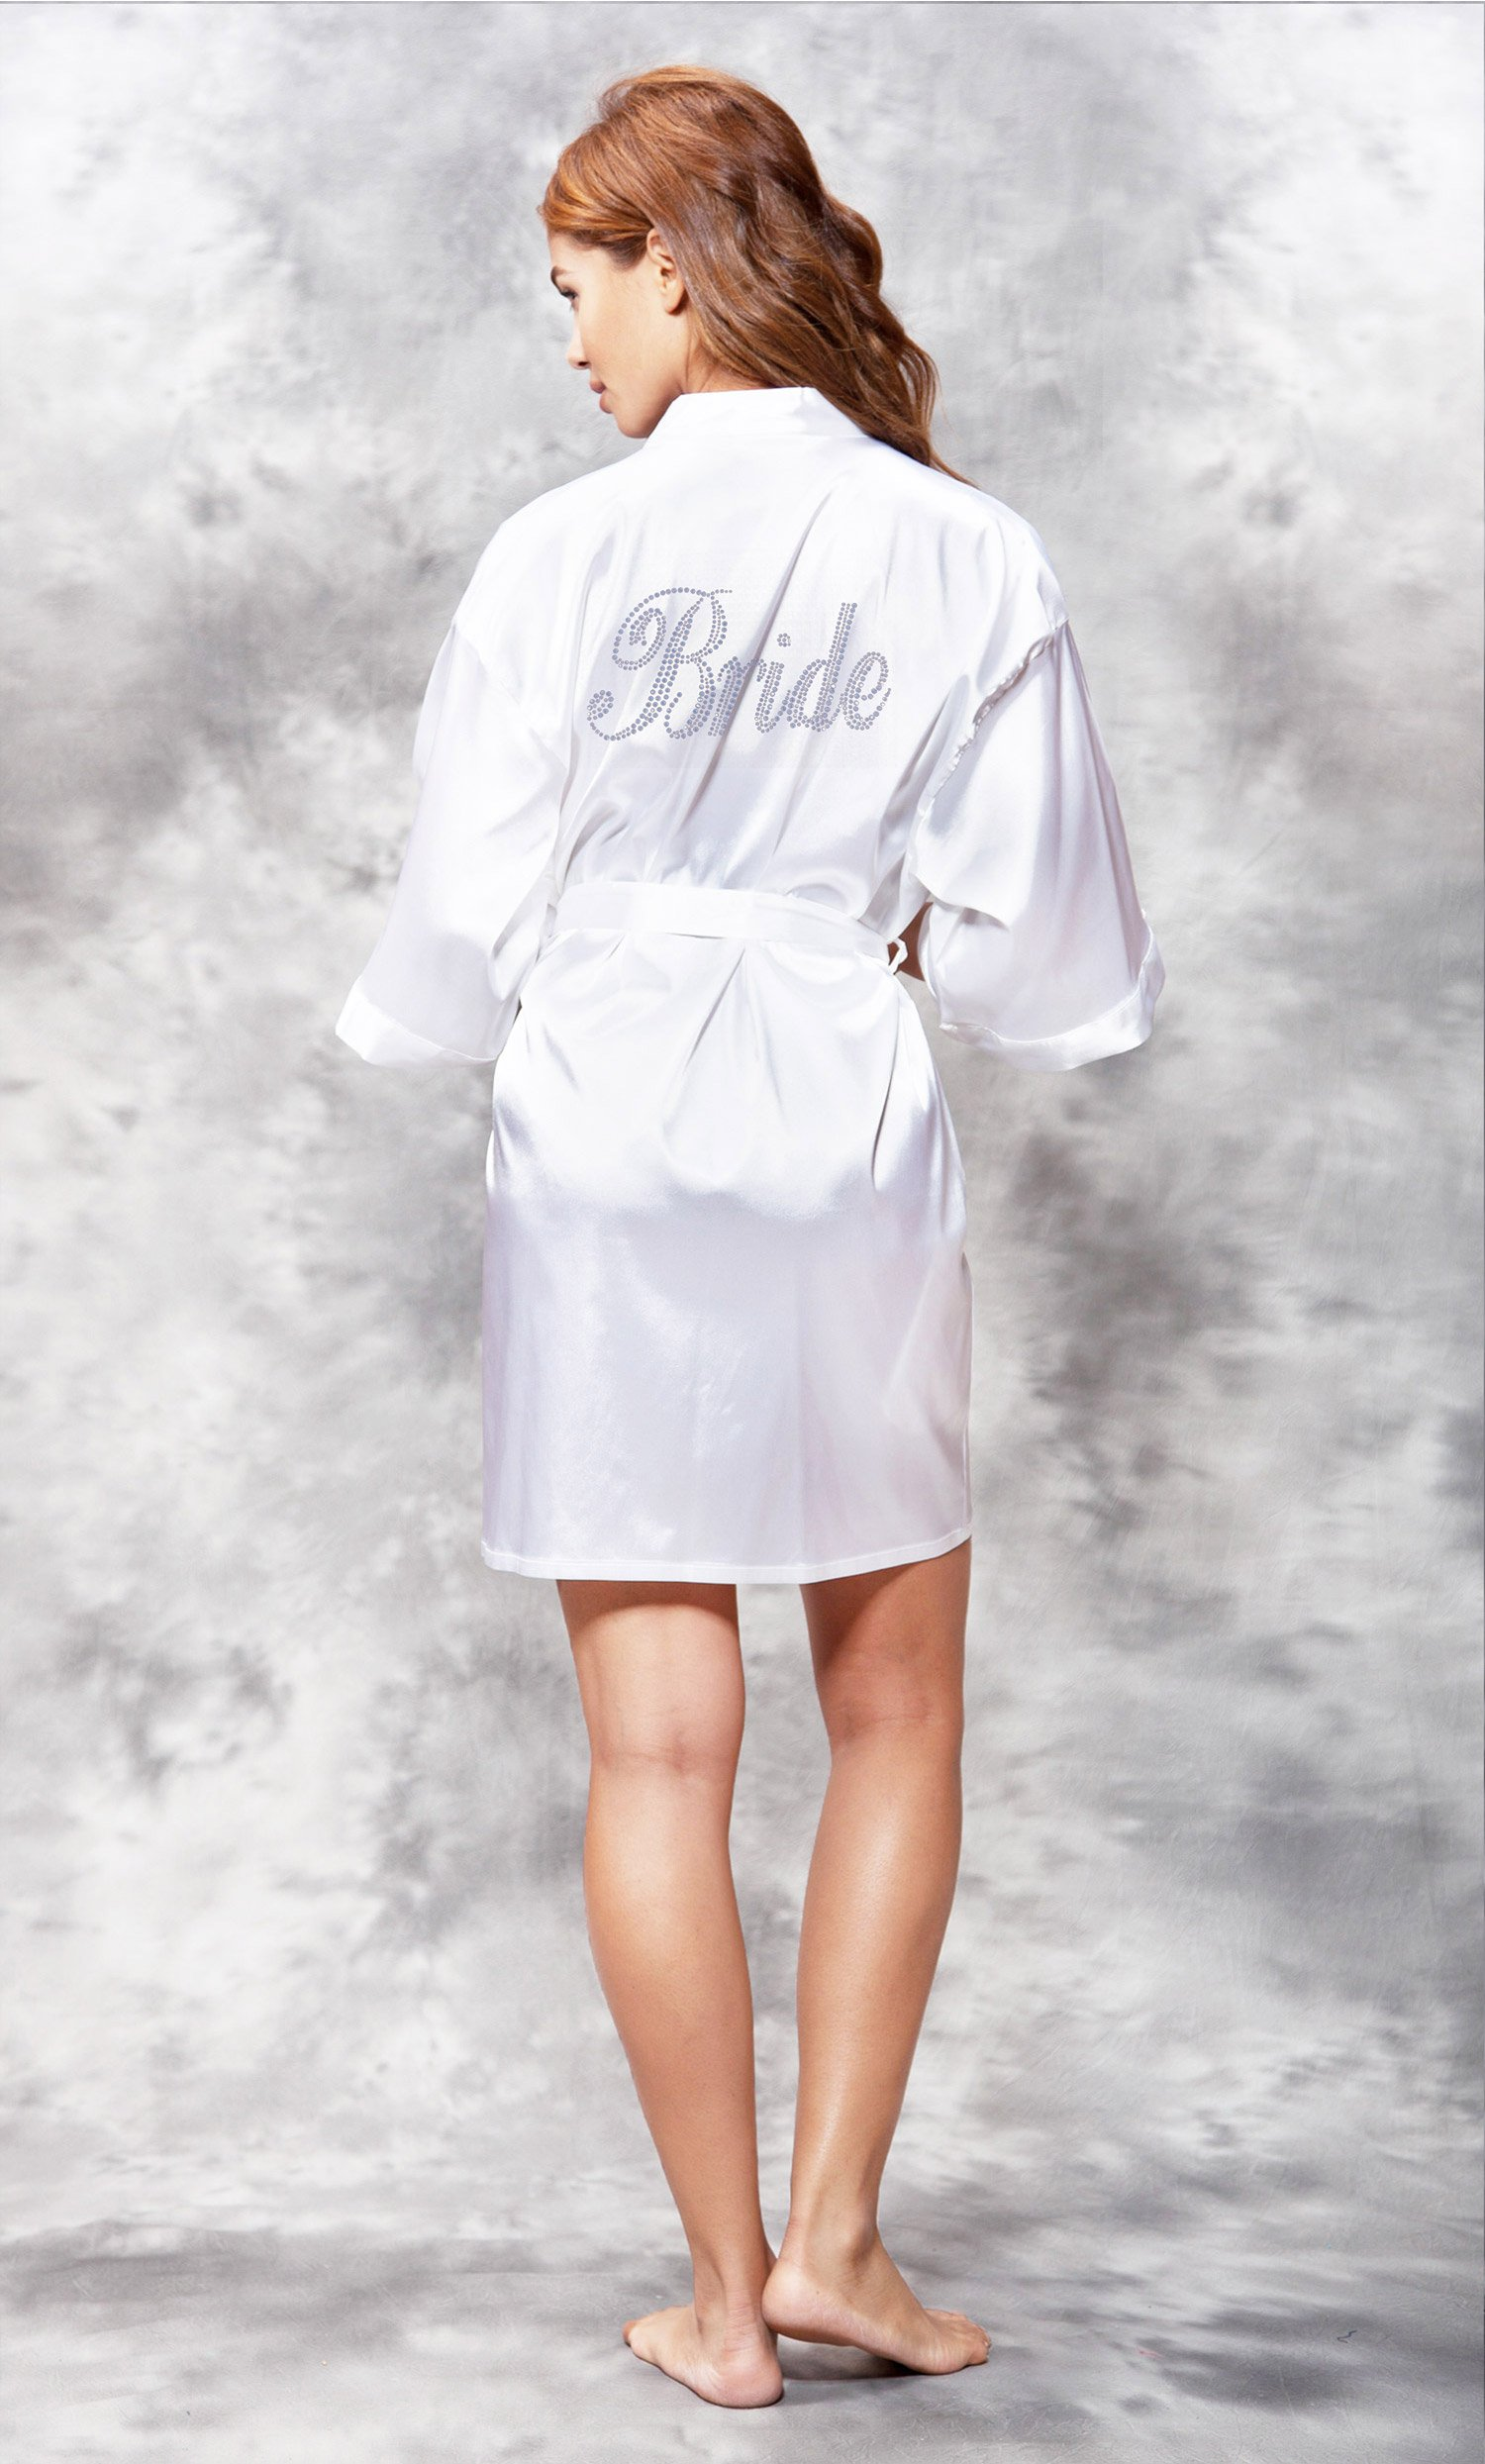 Bride Light Blue Rhinestone Satin Kimono White Short Robe-Robemart.com